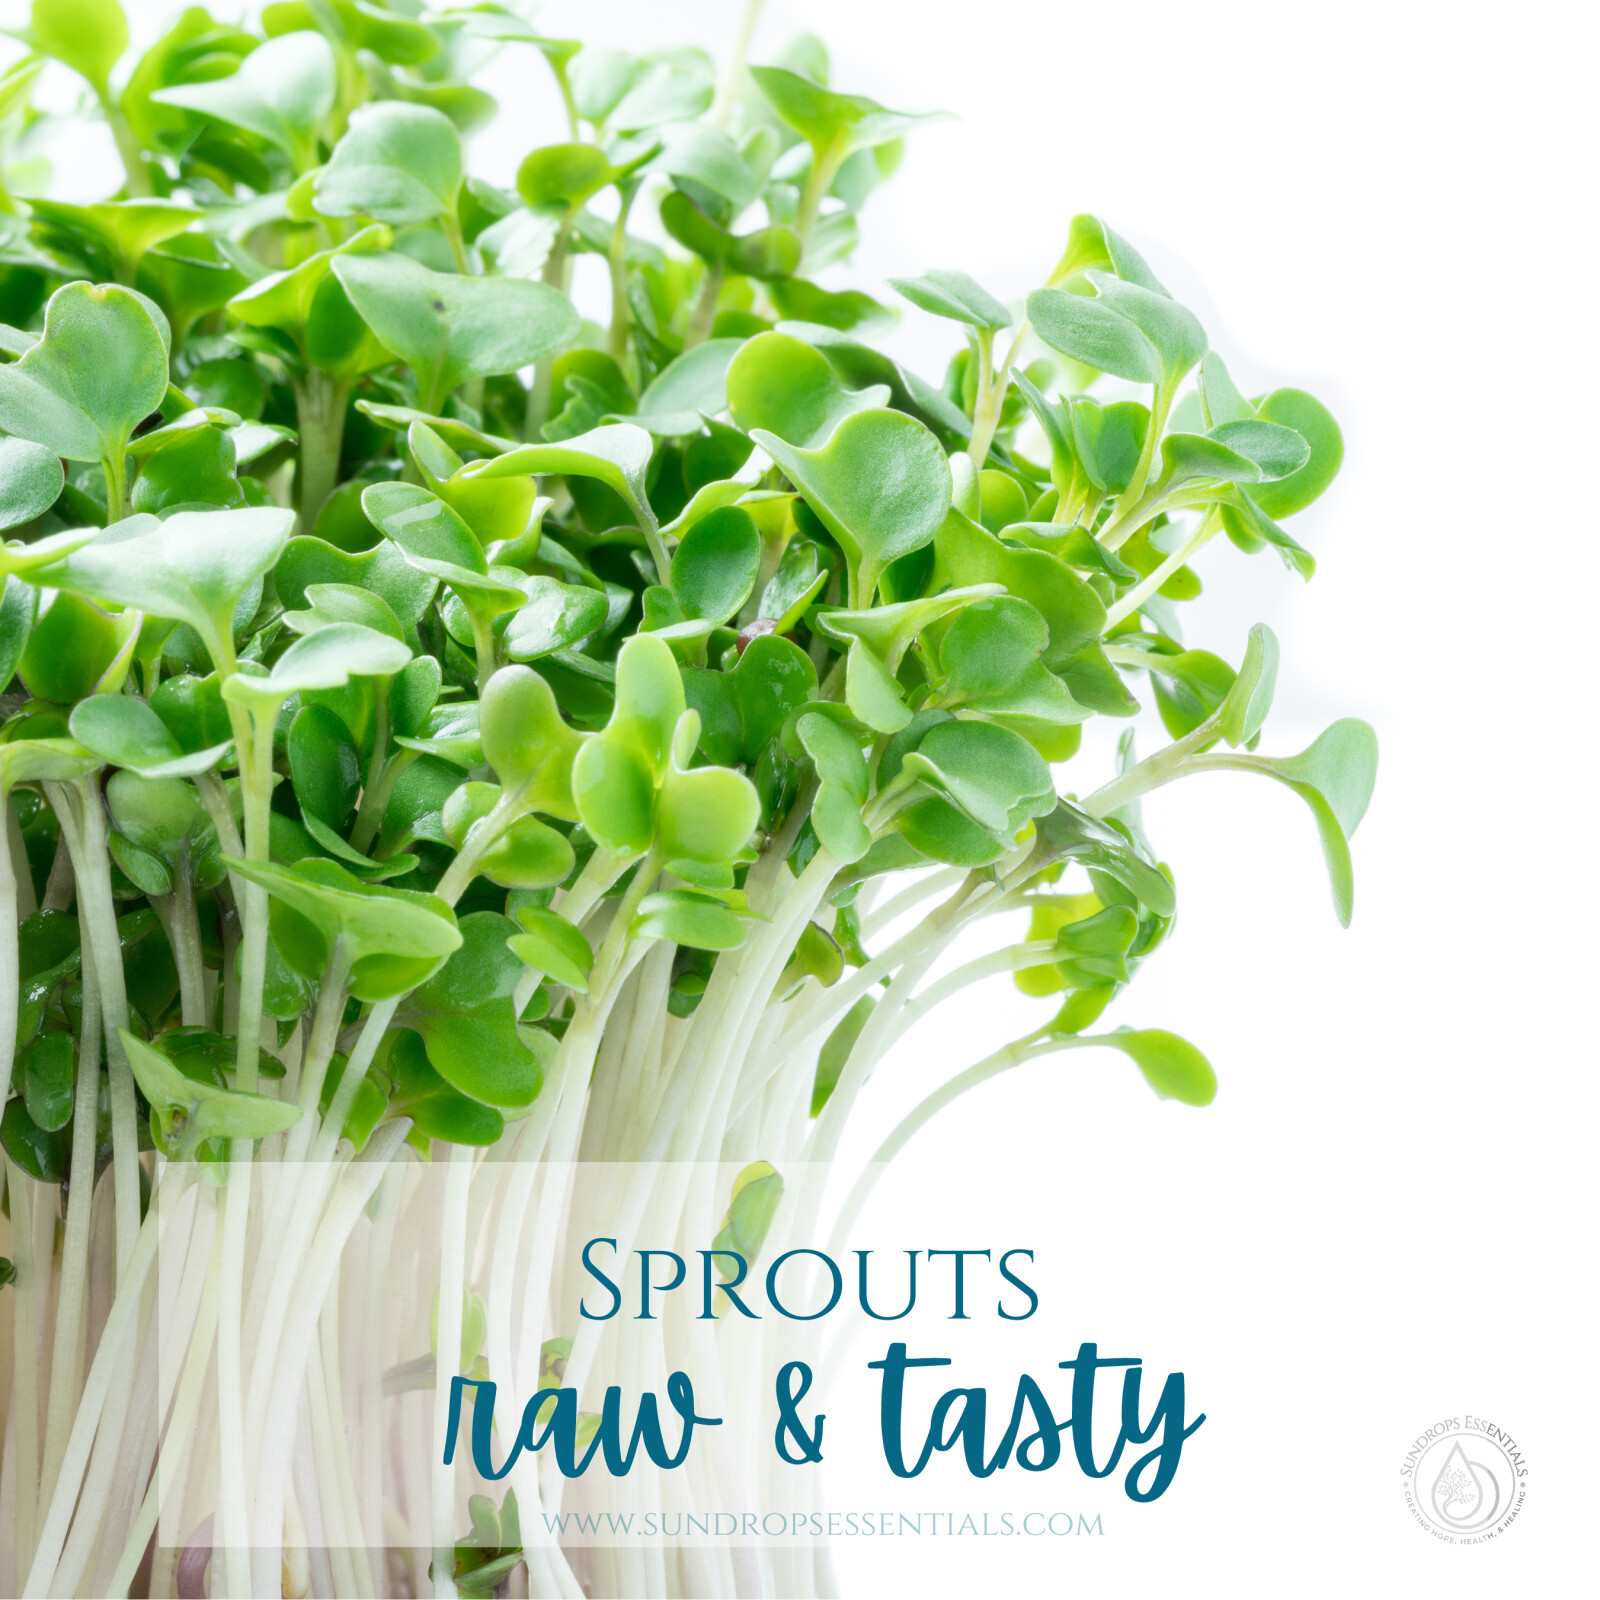 Raw & Tasty Sprouts